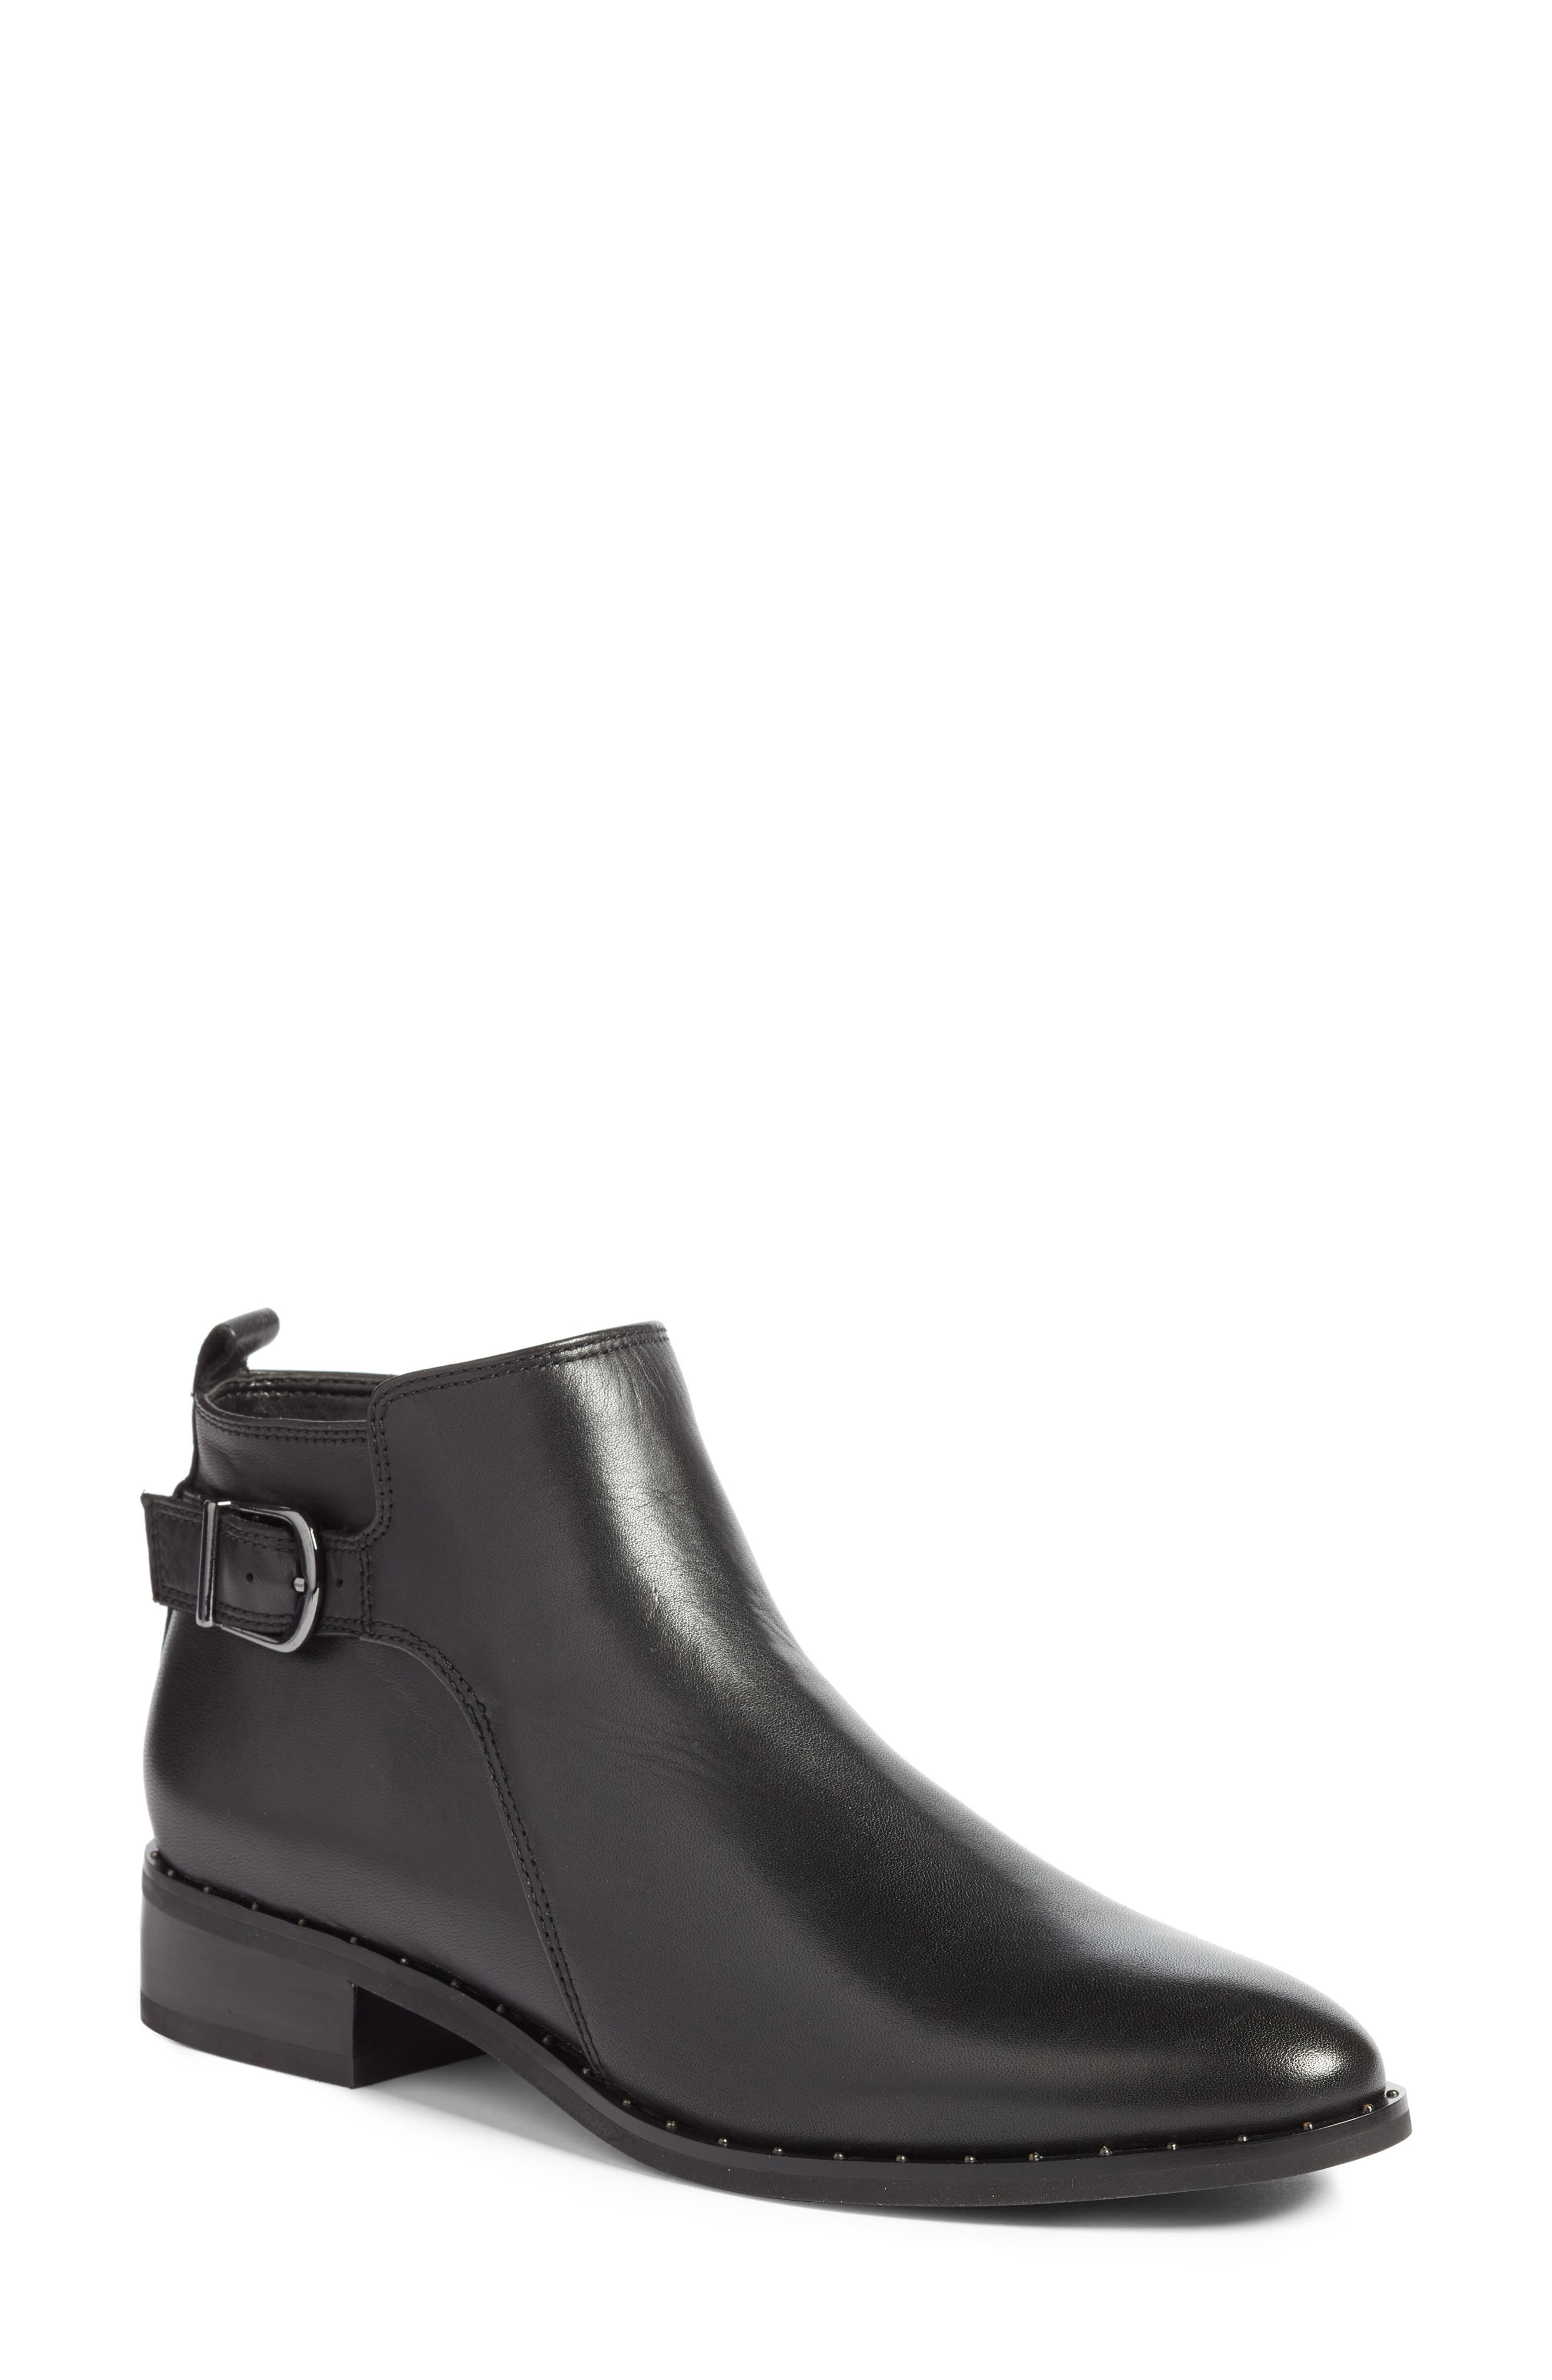 Tami Waterproof Moto Boot,                         Main,                         color, BLACK LEATHER